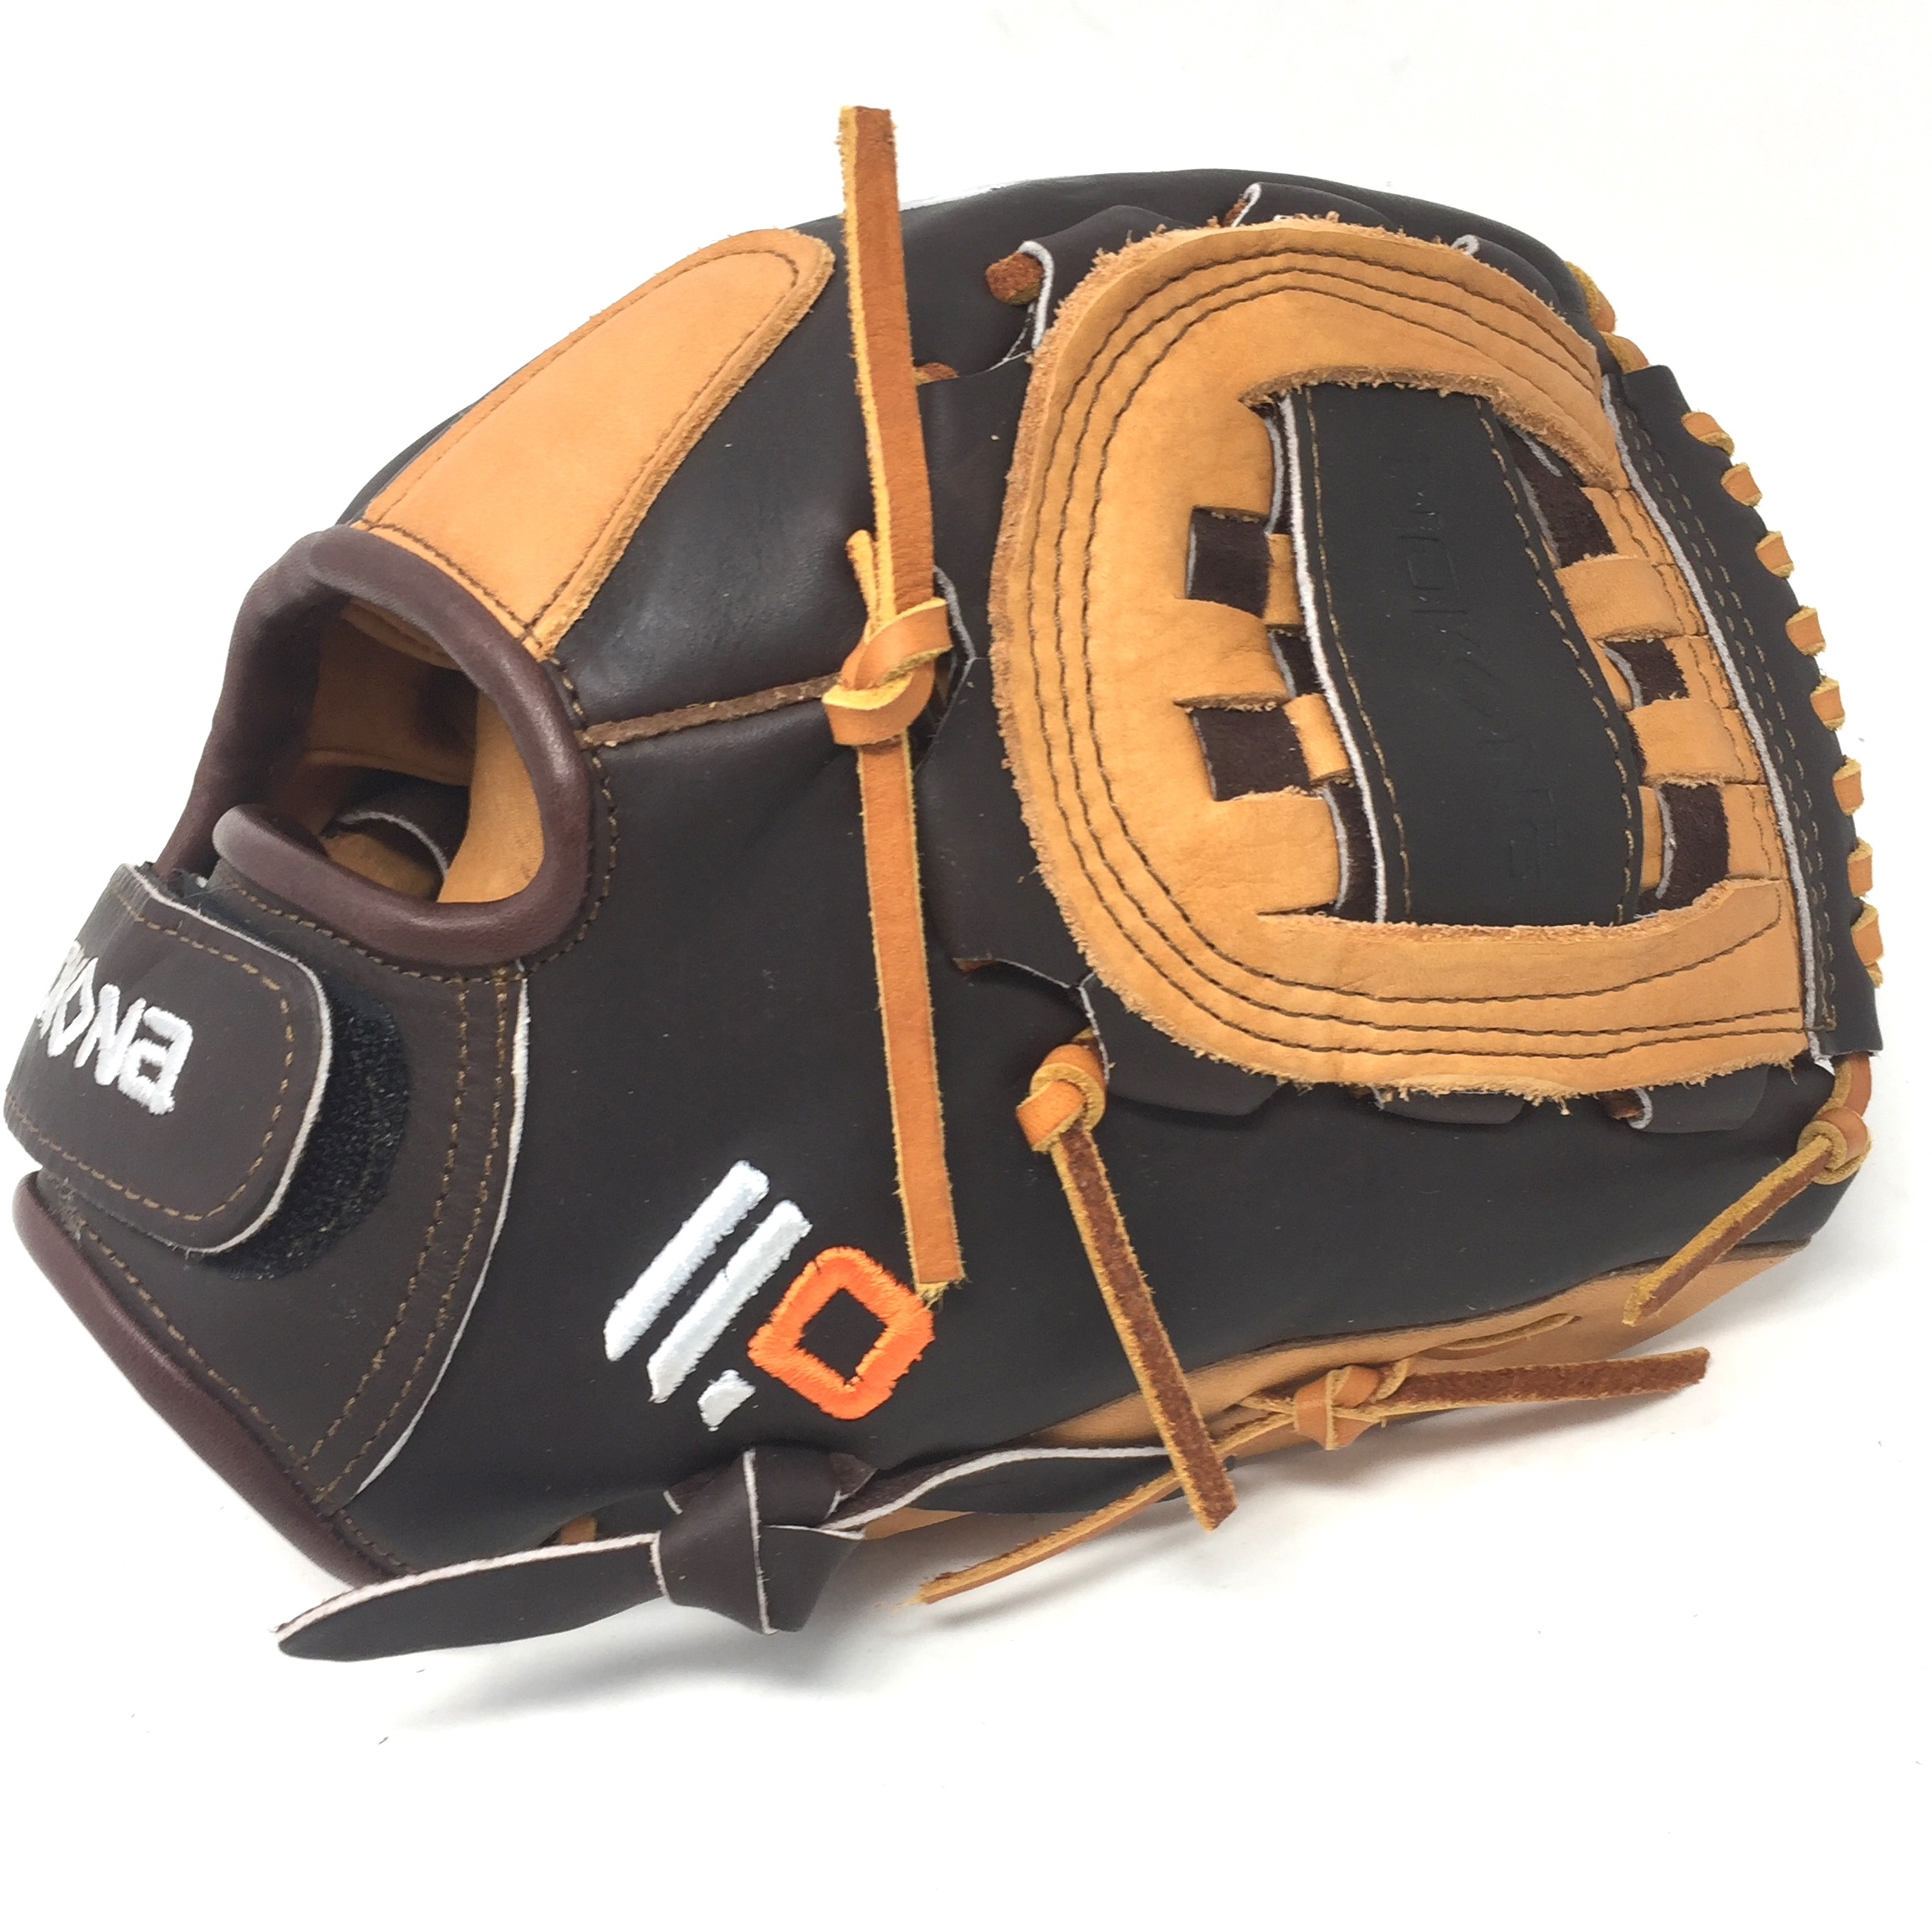 nokona-alpha-tan-supersoft-americankip-fastpitch-softball-glove-12-right-hand-throw S-V1200C-RightHandThrow Nokona 808808893981 The Alpha Select series is built with virtually no break-in needed